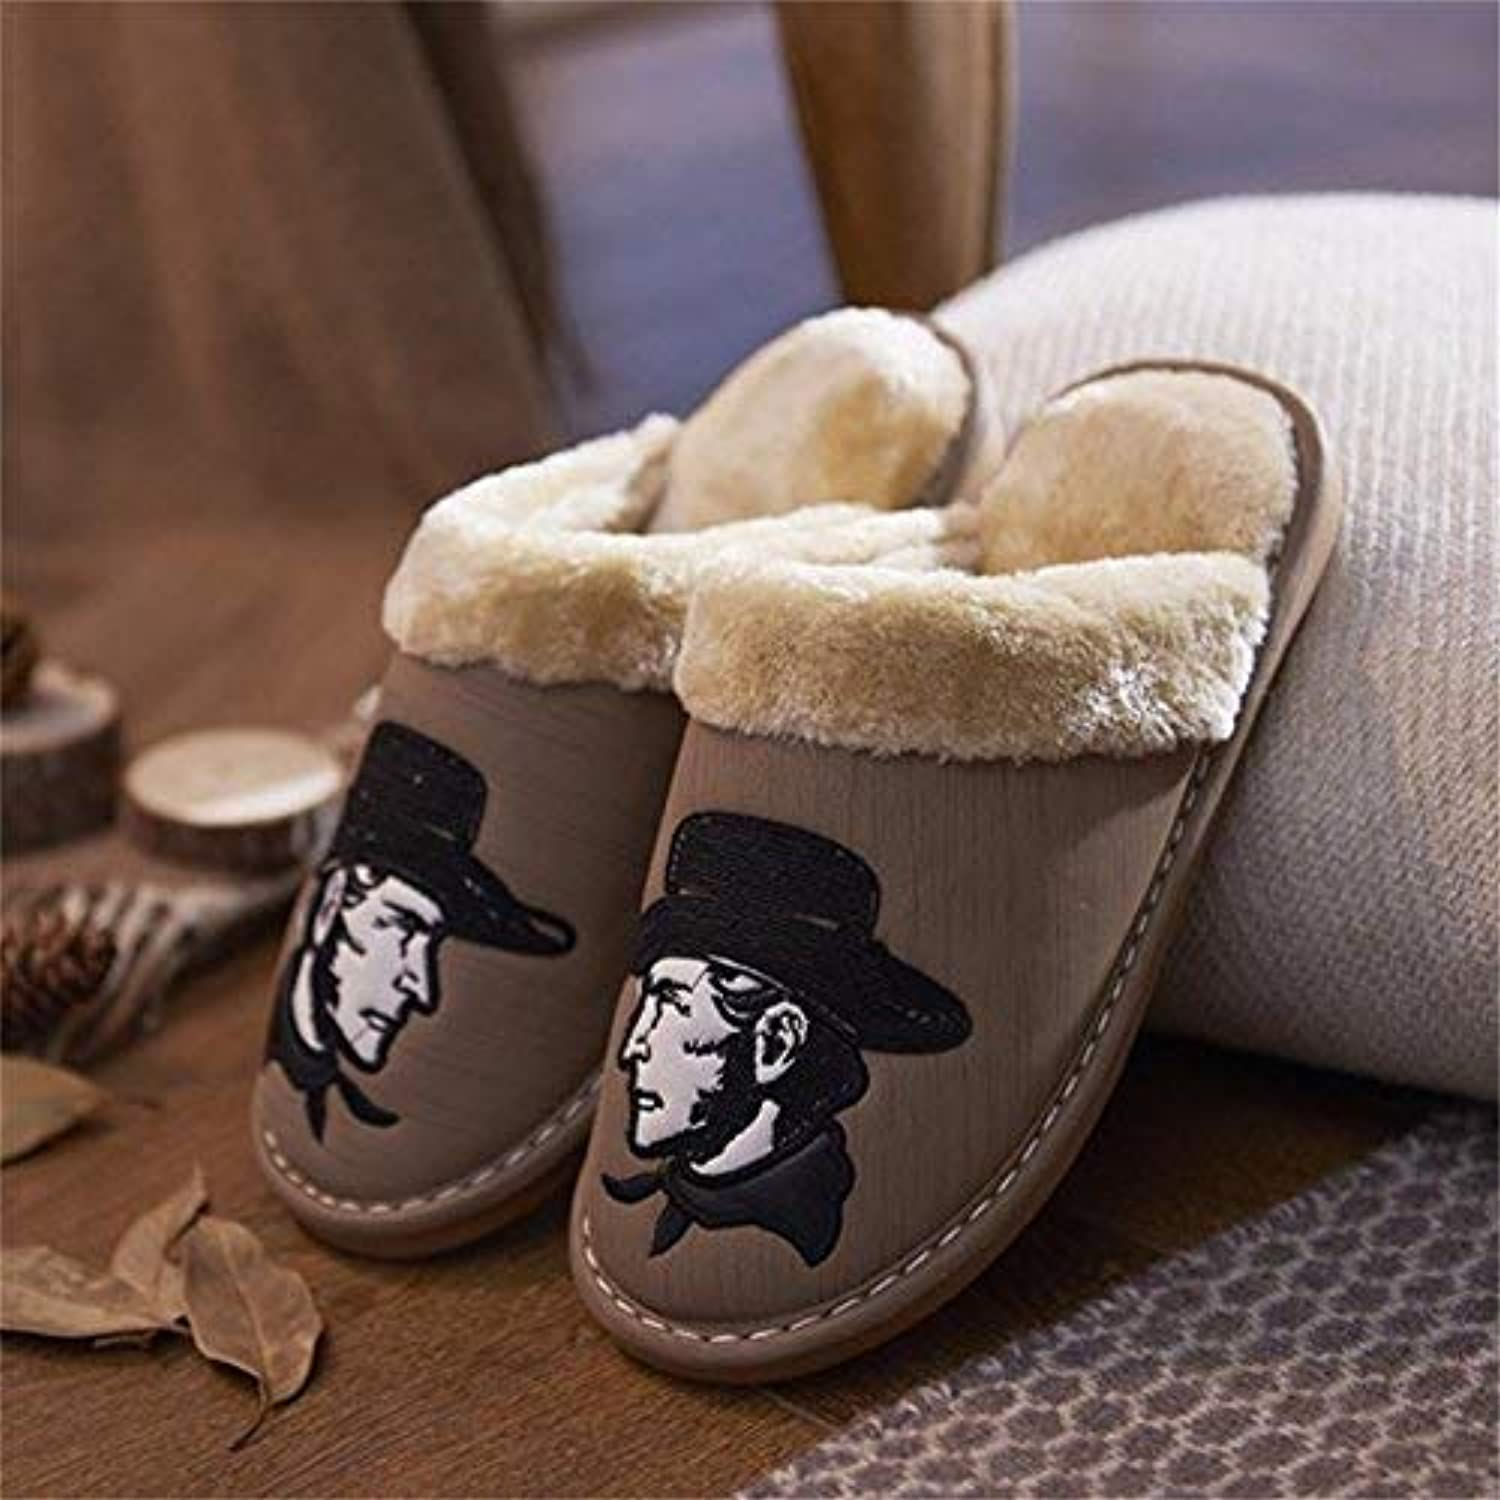 Men's Keep Warm Home Dedroom Slippers Casual Faux-Leather Slippers Large Brown Personality Creativity for Men